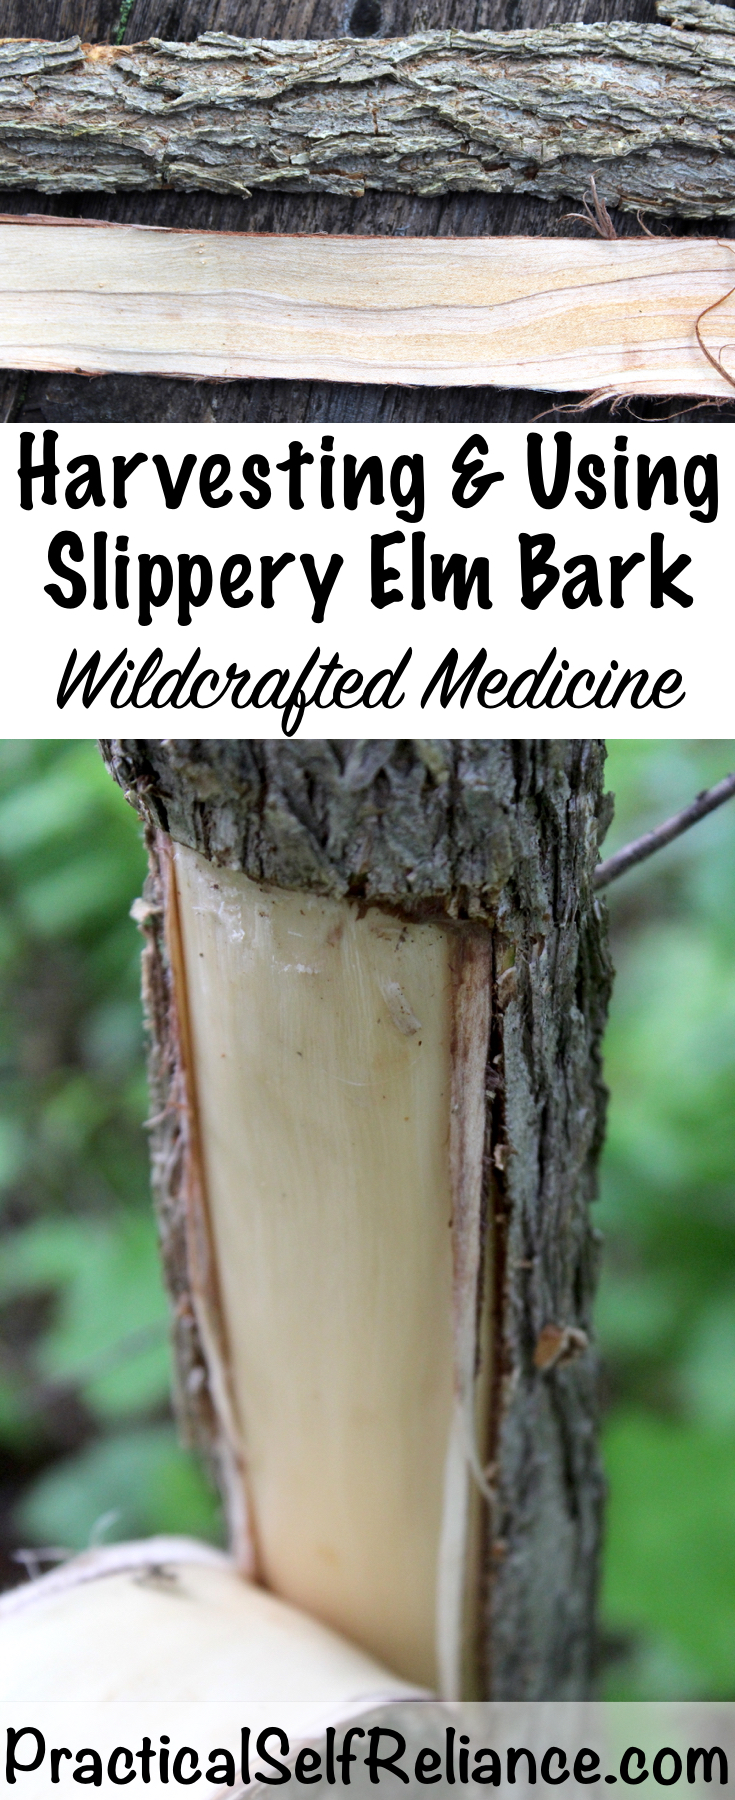 Harvesting & Using Slippery Elm Bark ~ Wildcrafted Medicine